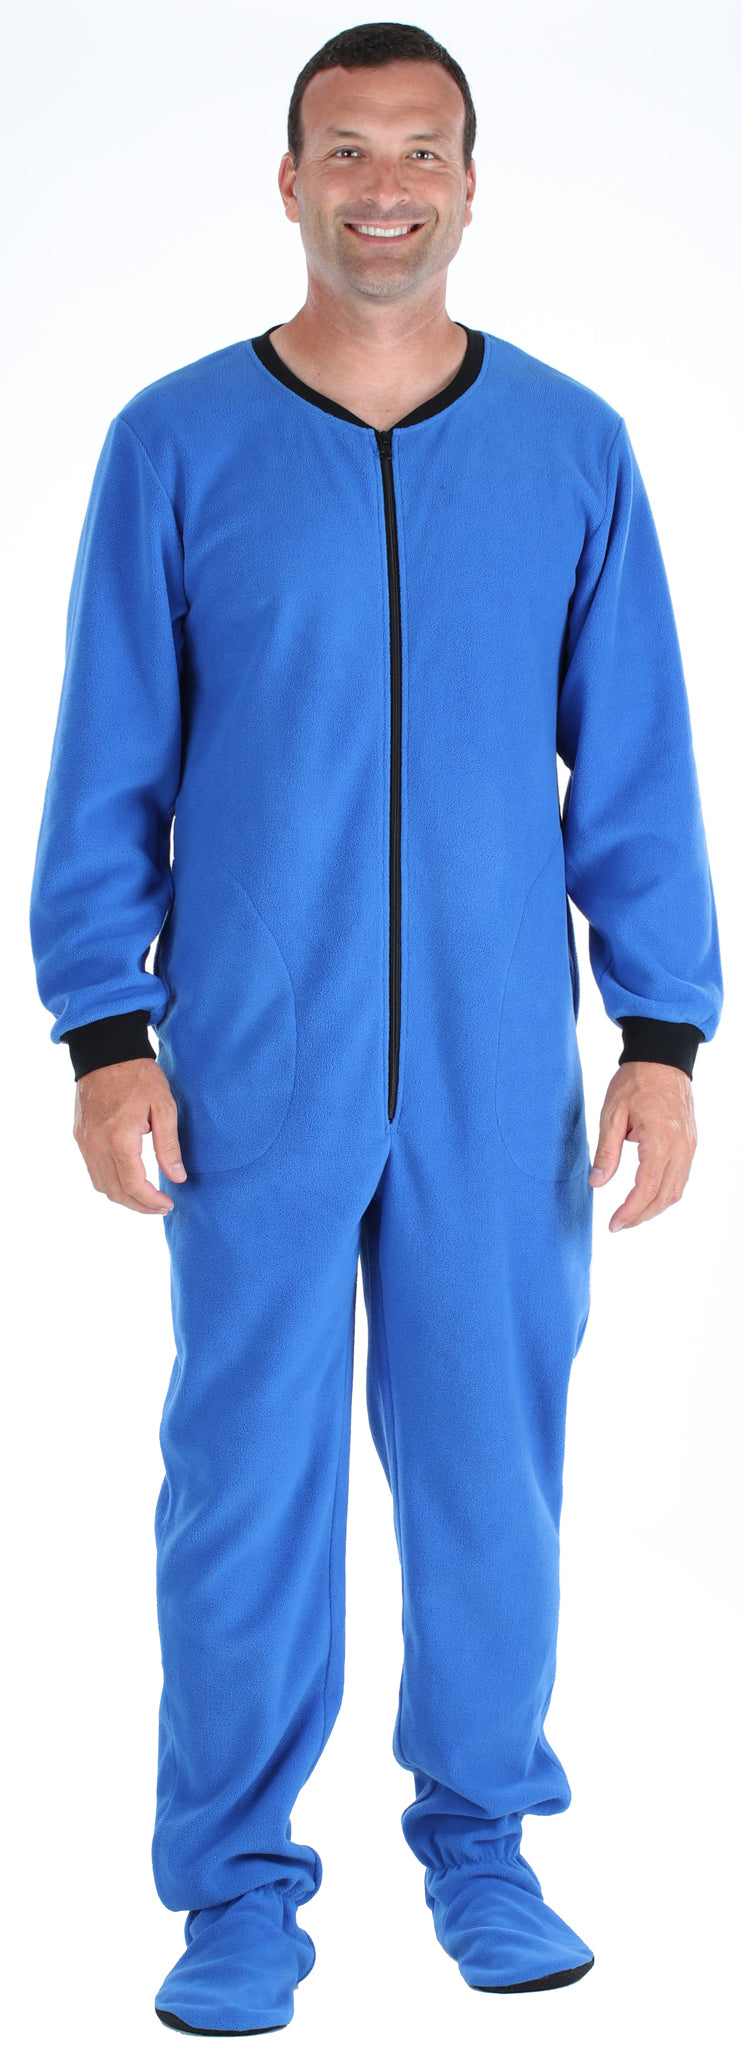 PajamaMania Men's Fleece Footed Solid Color Onesie Pajamas Jumpsuit